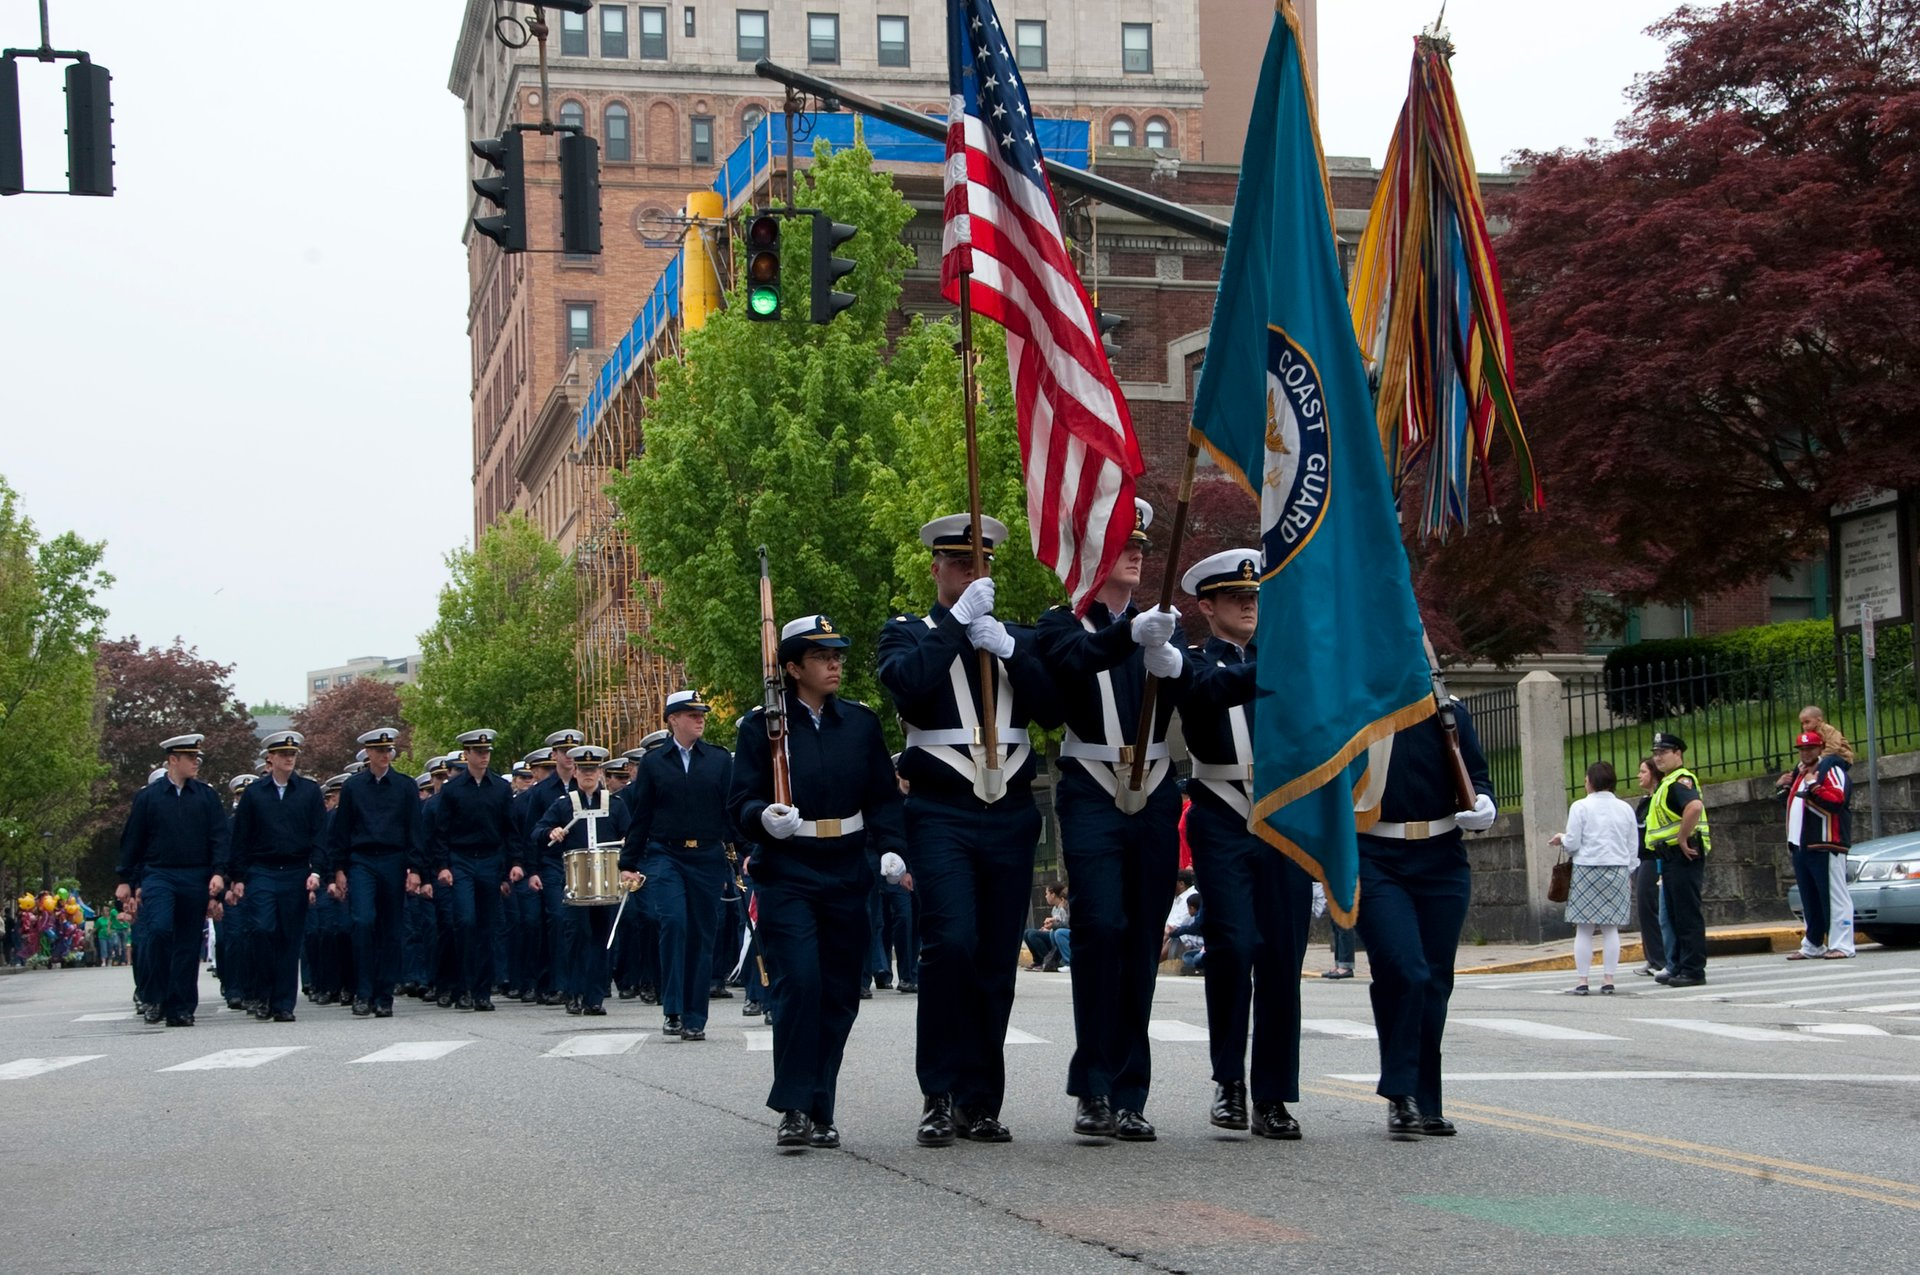 U.S. Coast Guard Academy cadets march in the New London Memorial Day and Hope Week Parade in New London 2020